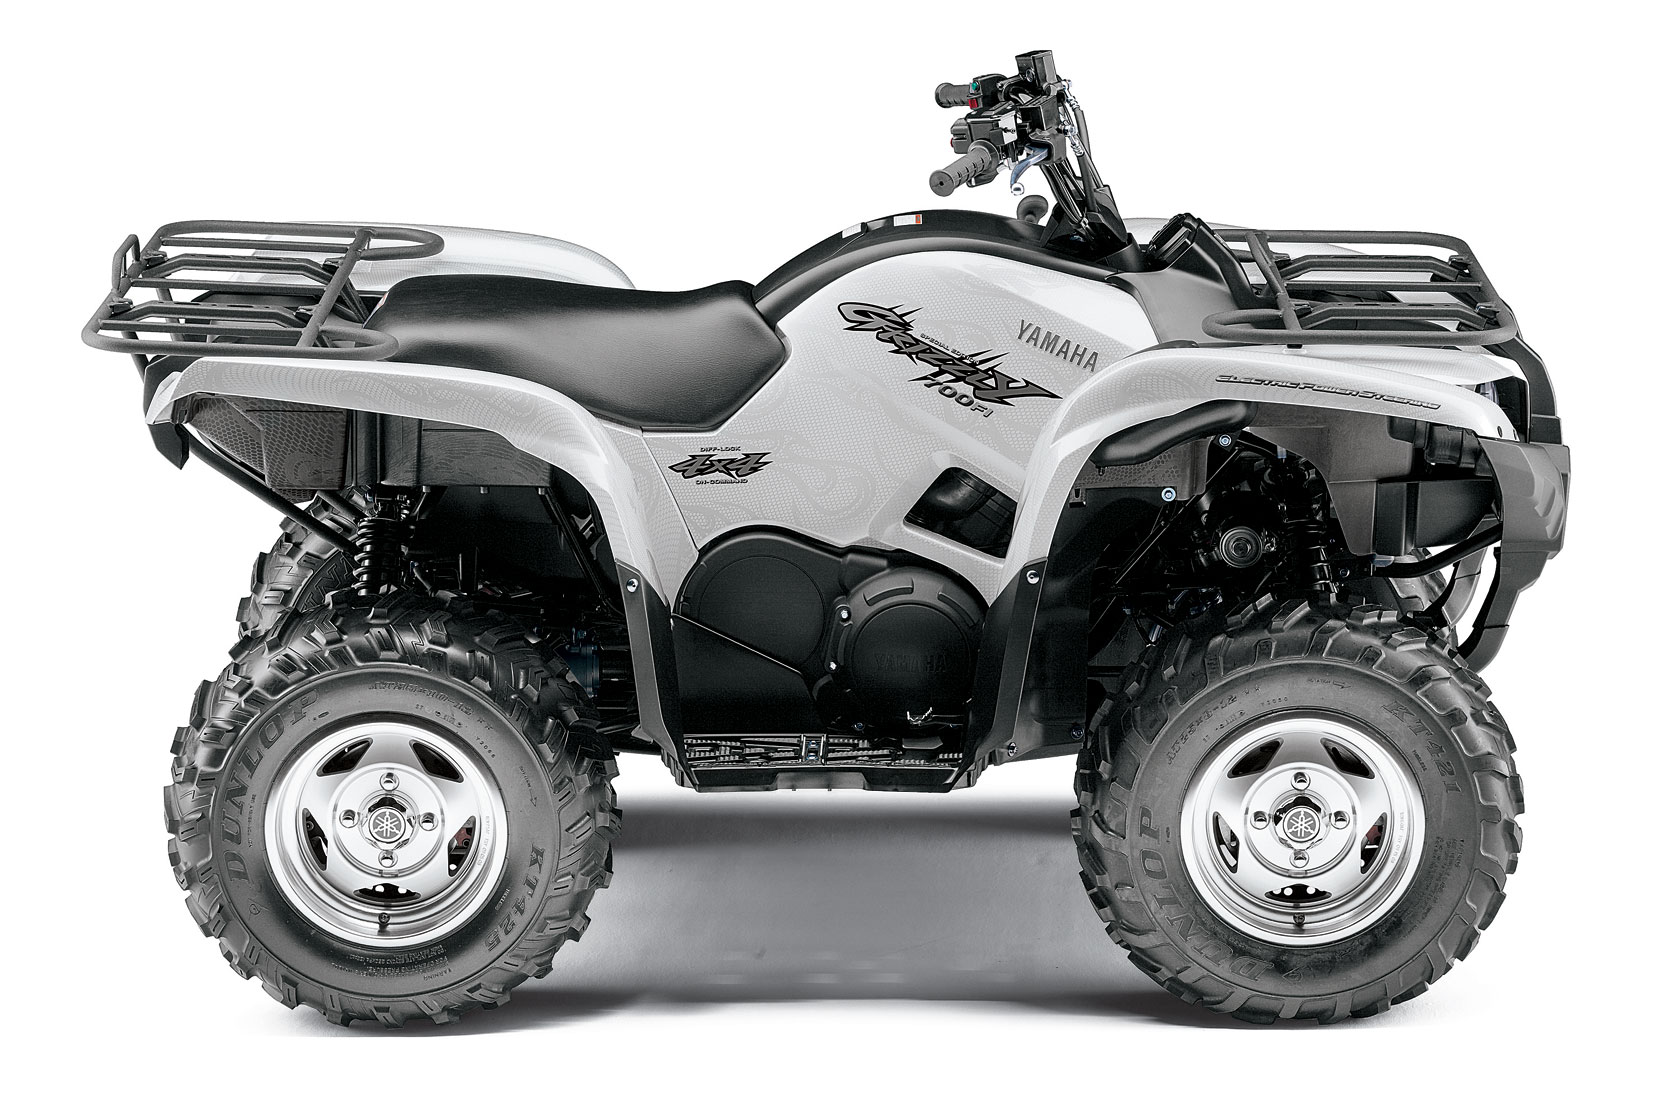 2017 Yamaha Grizzly >> YAMAHA Grizzly 700 FI EPS Special Edition - 2009, 2010 - autoevolution